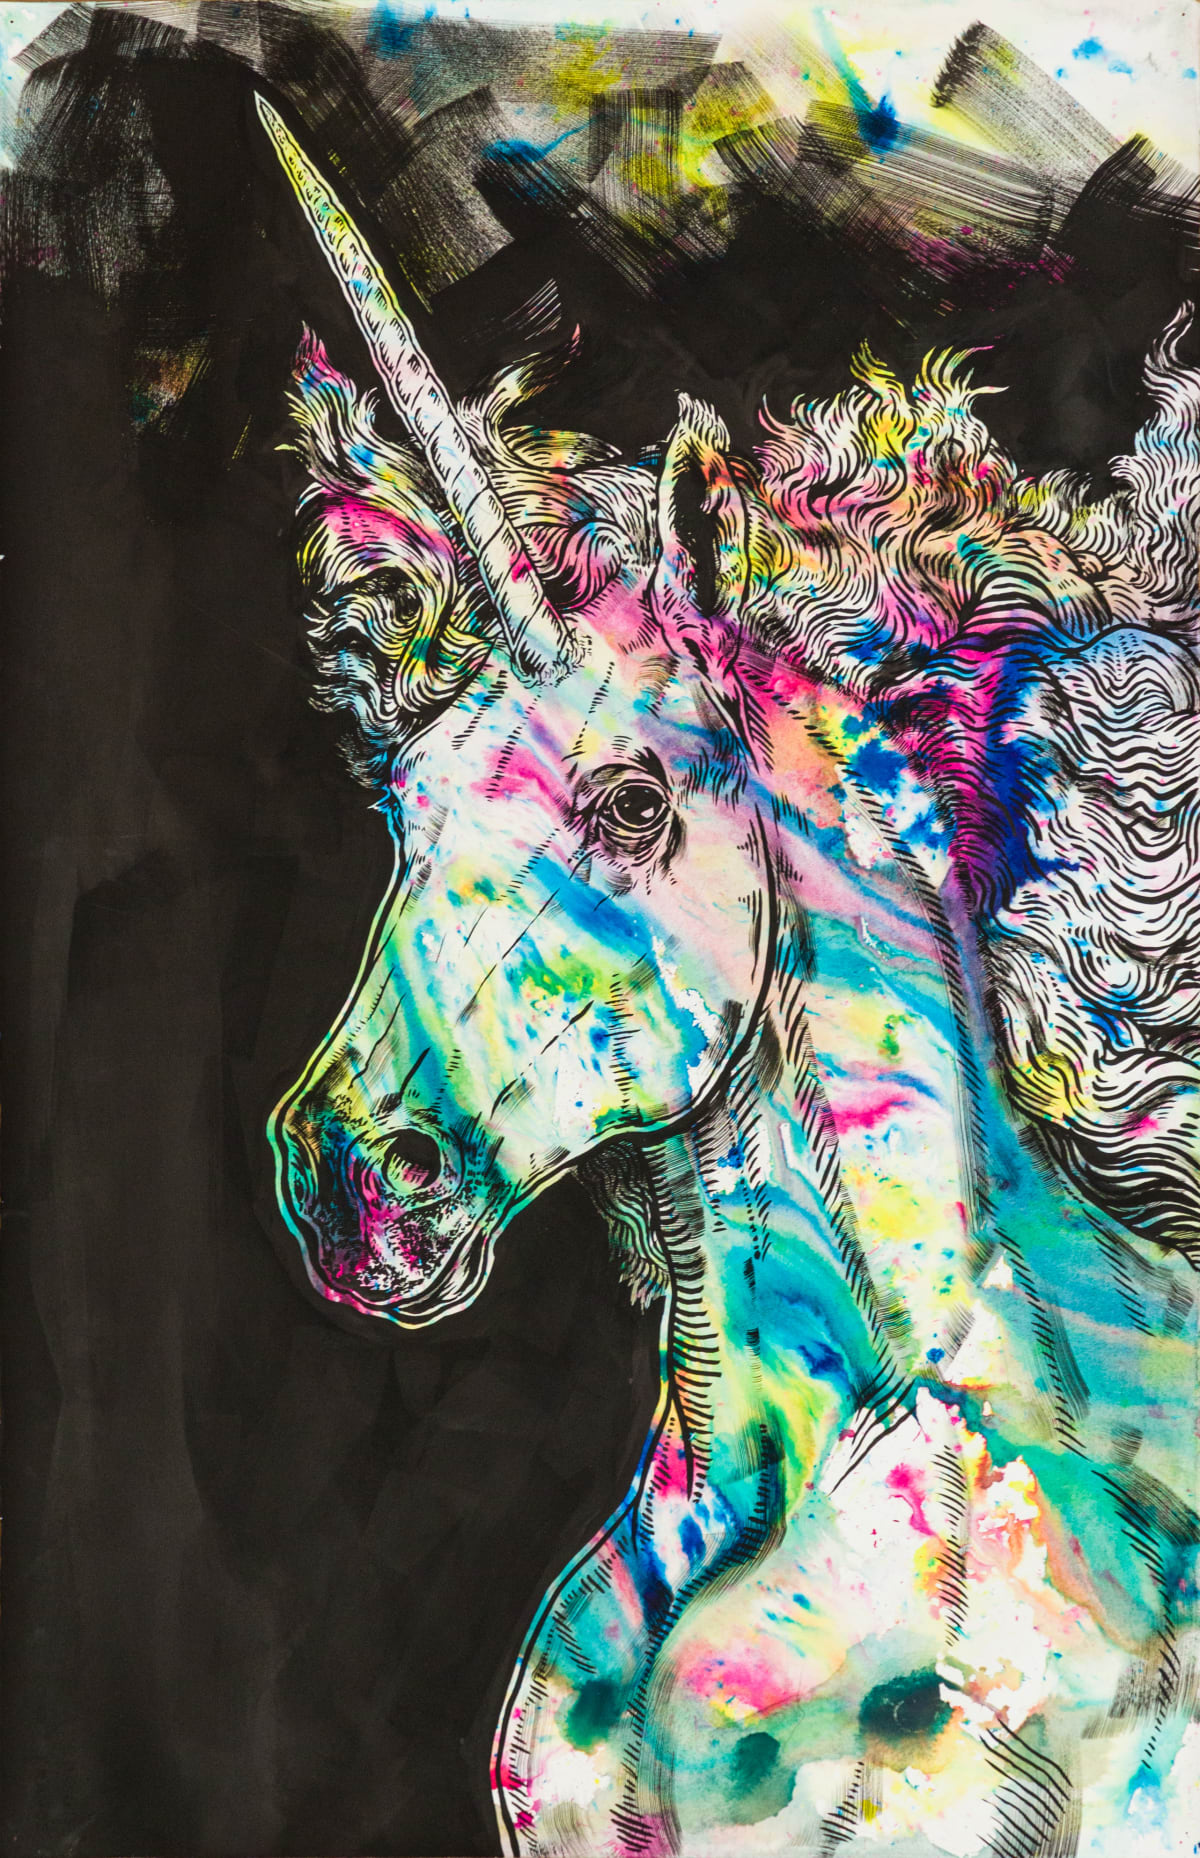 Todd Ryan White, Black Rainbow: Unicorn, 2019